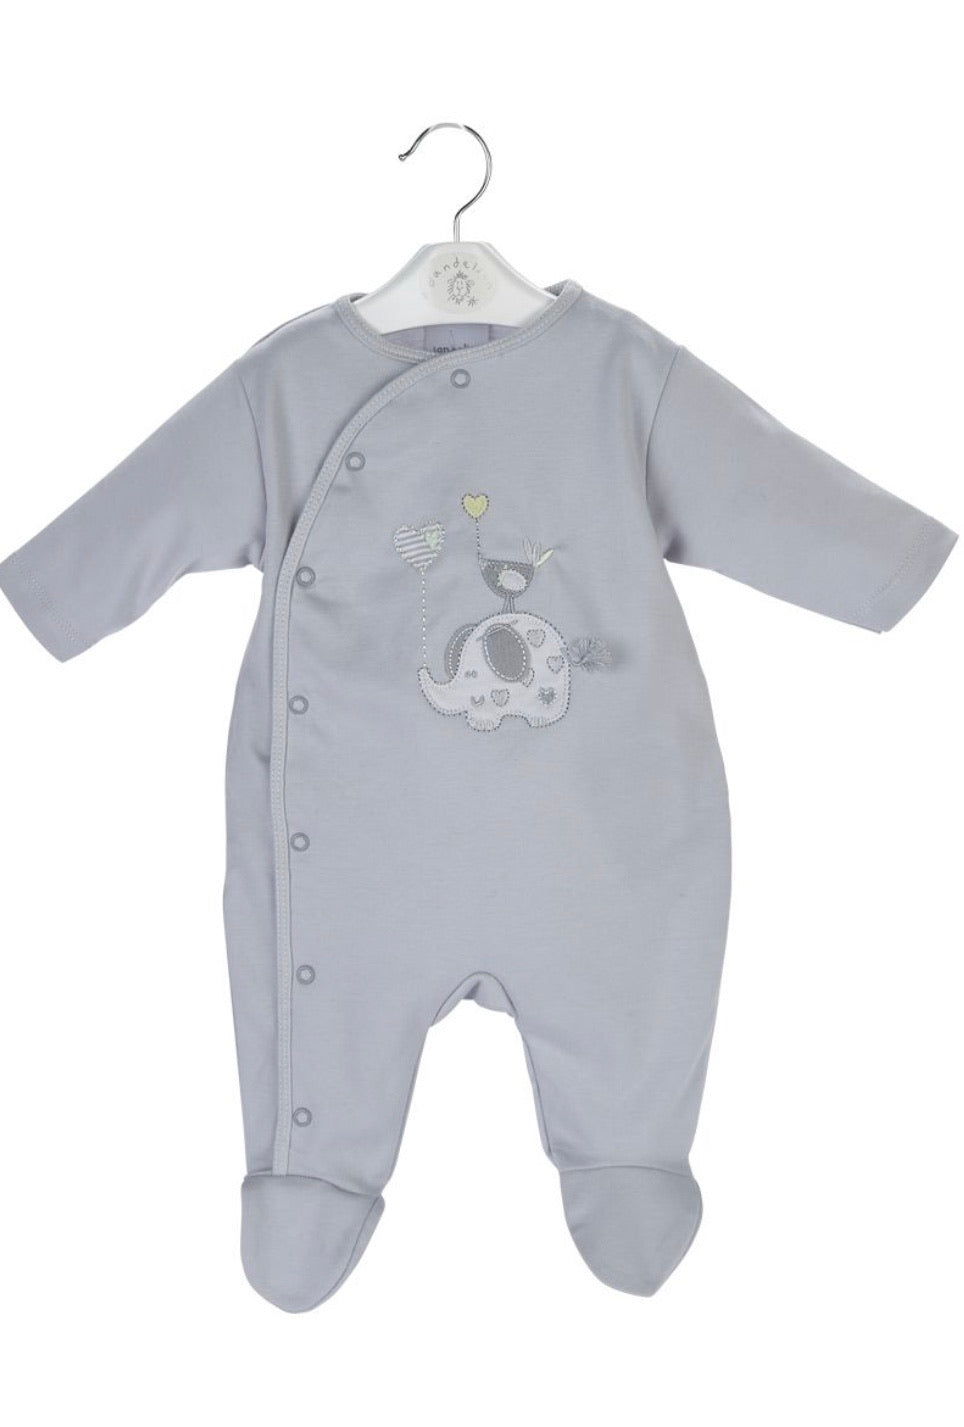 Unisex Grey Elephant Romper - Hetty's Baby Boutique